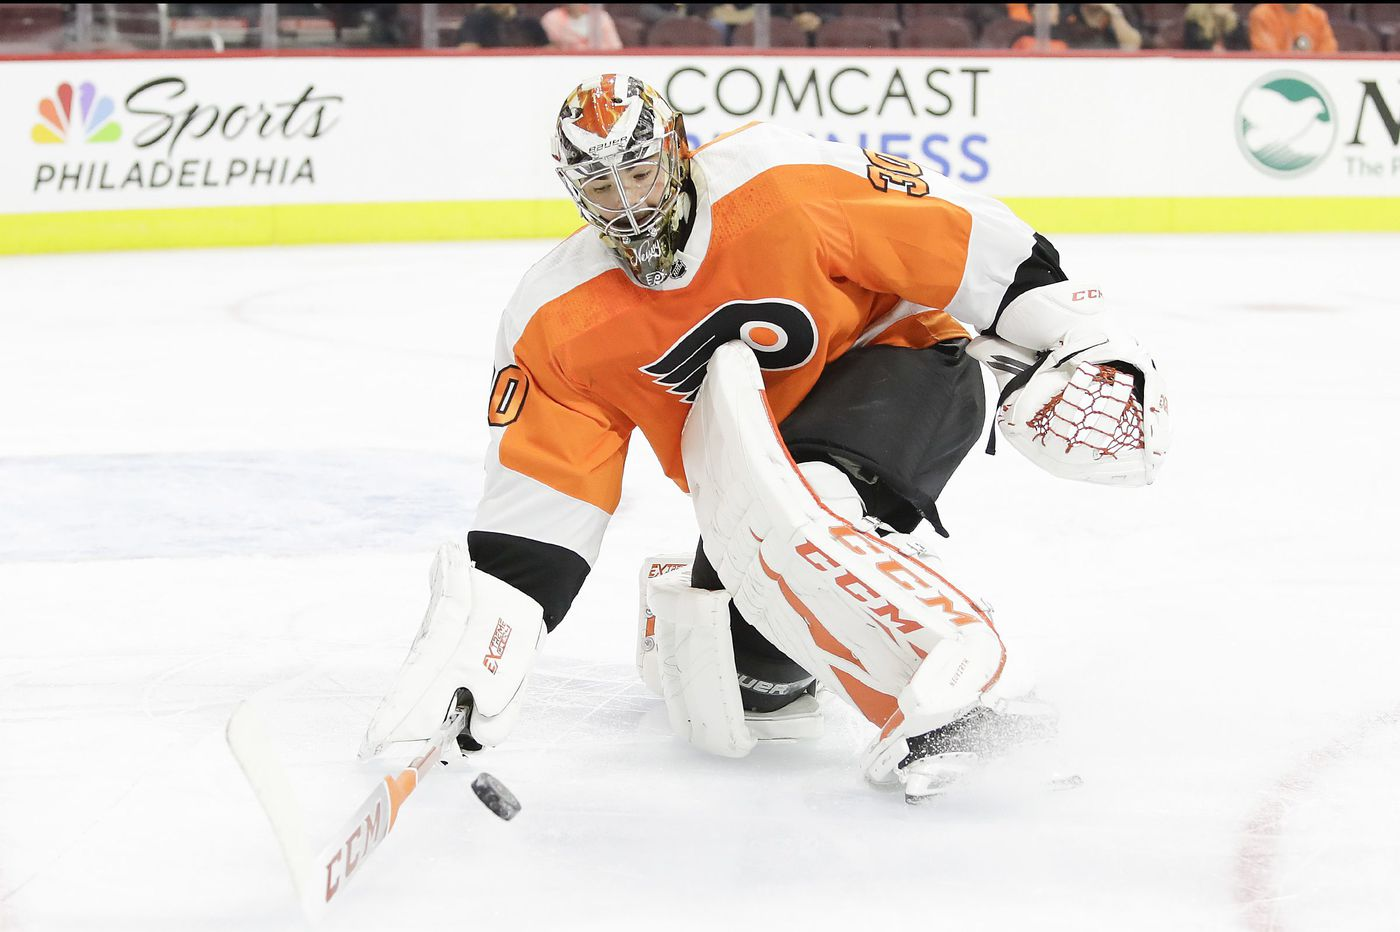 Michal Neuvirth to the Flyers' rescue?